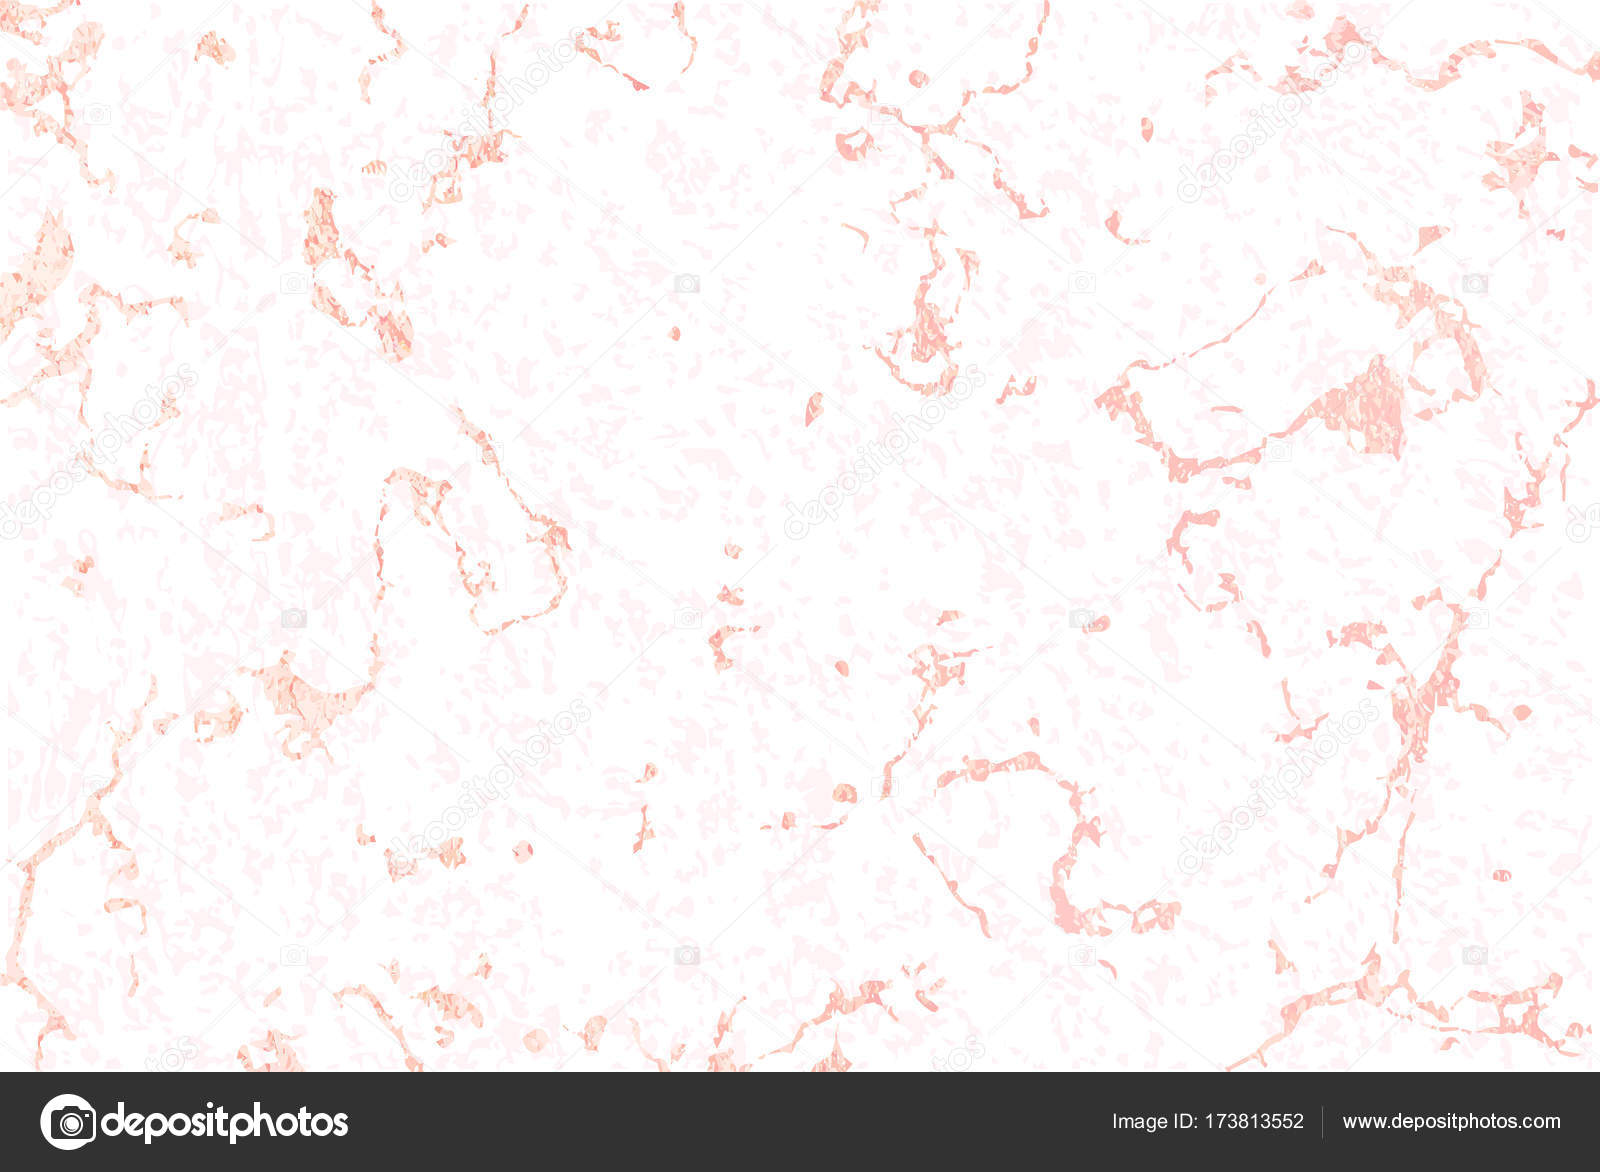 ᐈ Rose Gold And Marble Wallpaper Stock Vectors Royalty Free Rose Gold Foil Images Download On Depositphotos